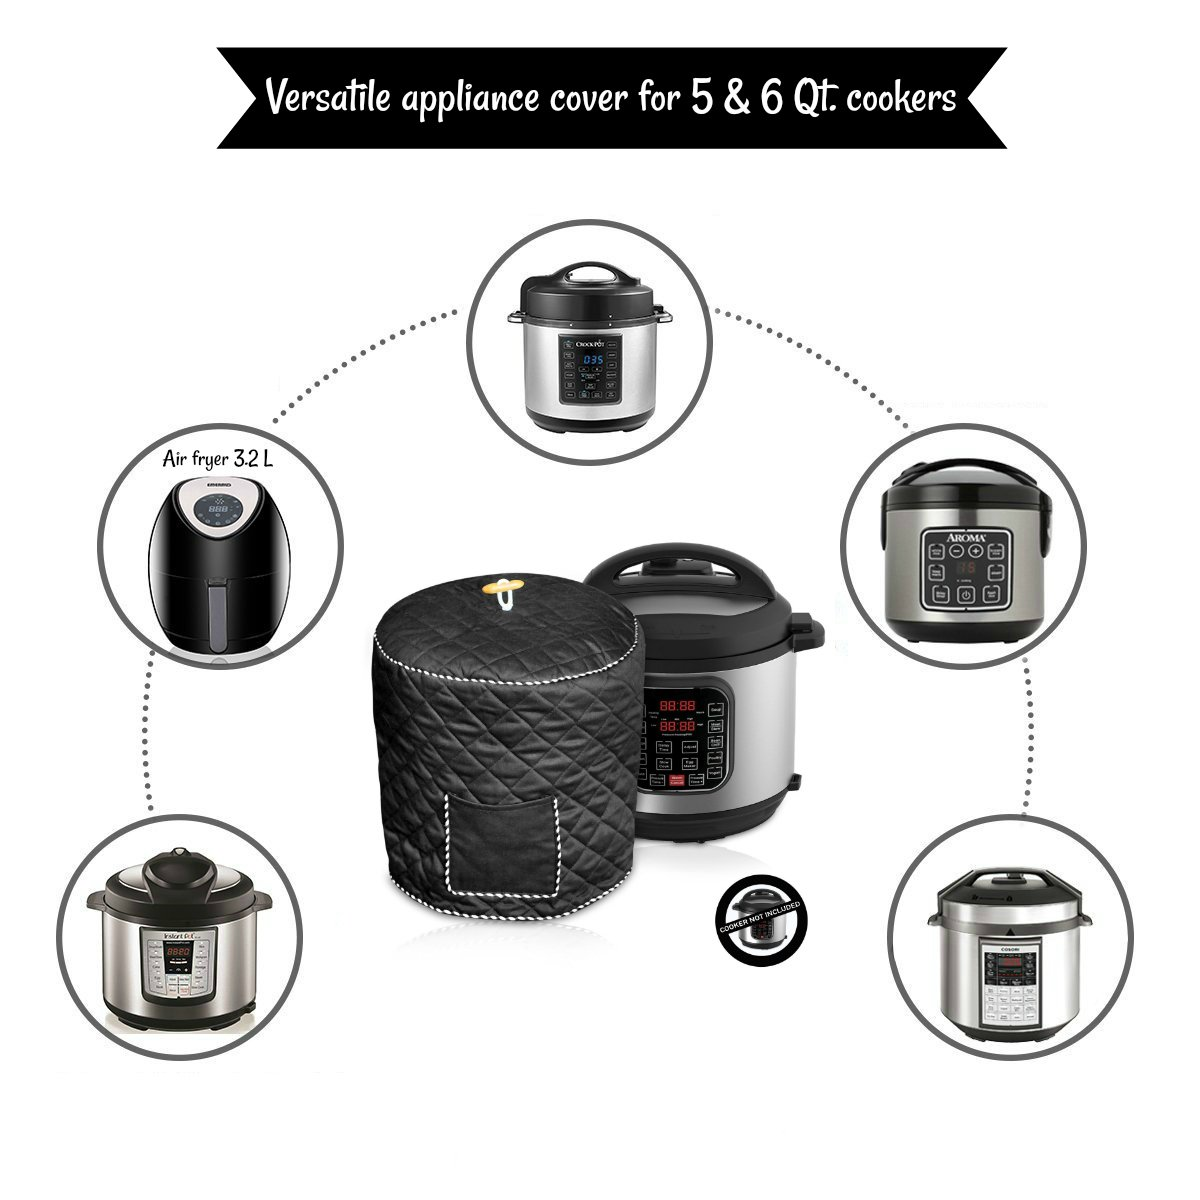 Black Decorative Cover For Electric Pressure Cookers Has Pocket For Accessories Fits 6QT Instant Pot Debbiedoo/' s FBA/_COMINHKG123175